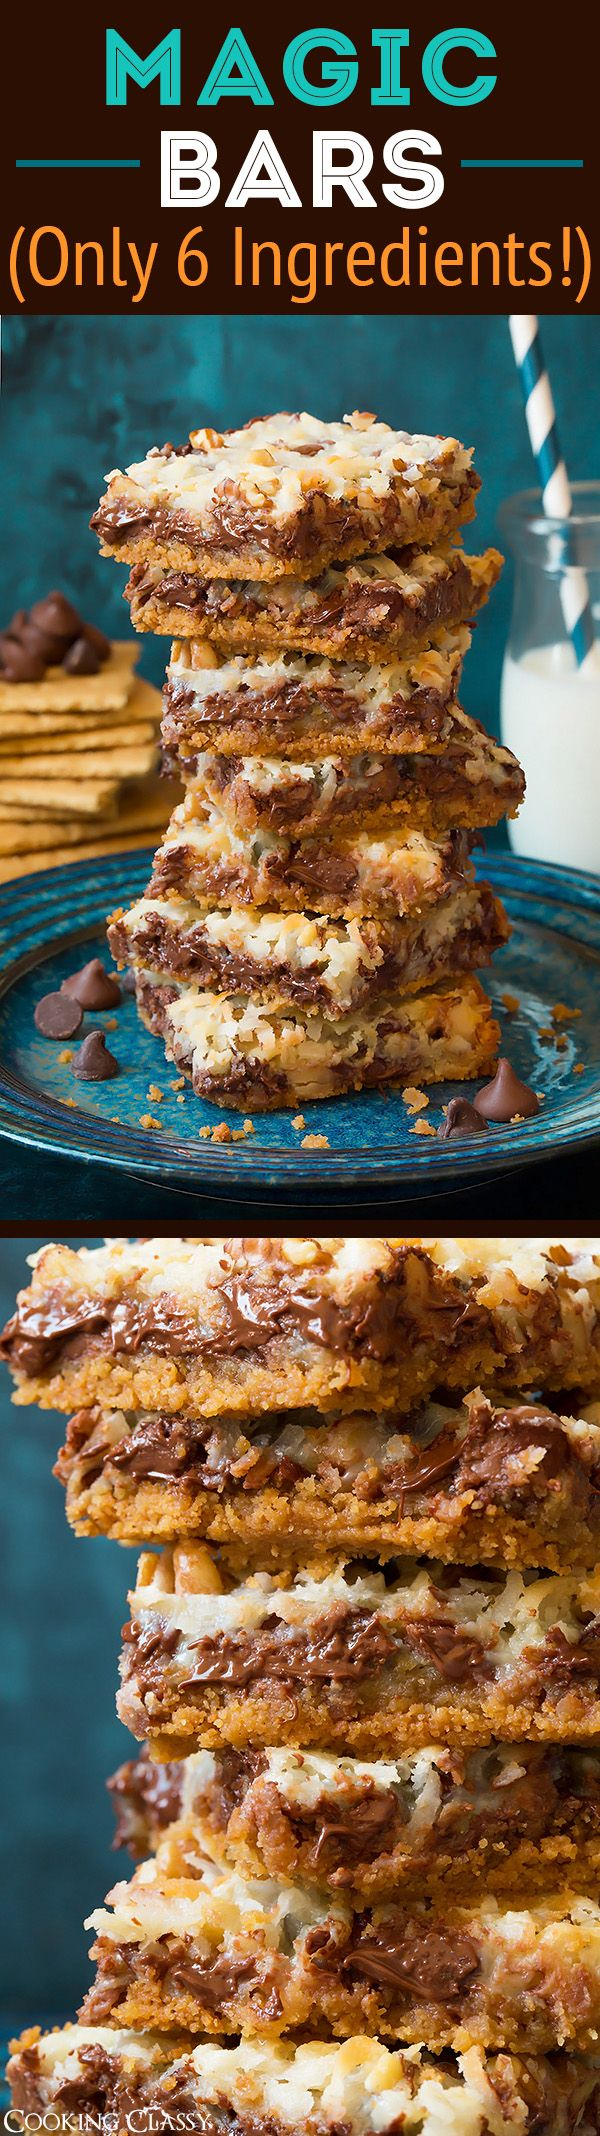 Six Layer Magic Bars (only 6 ingredients!) - A classic super easy treat everyone always loves!!